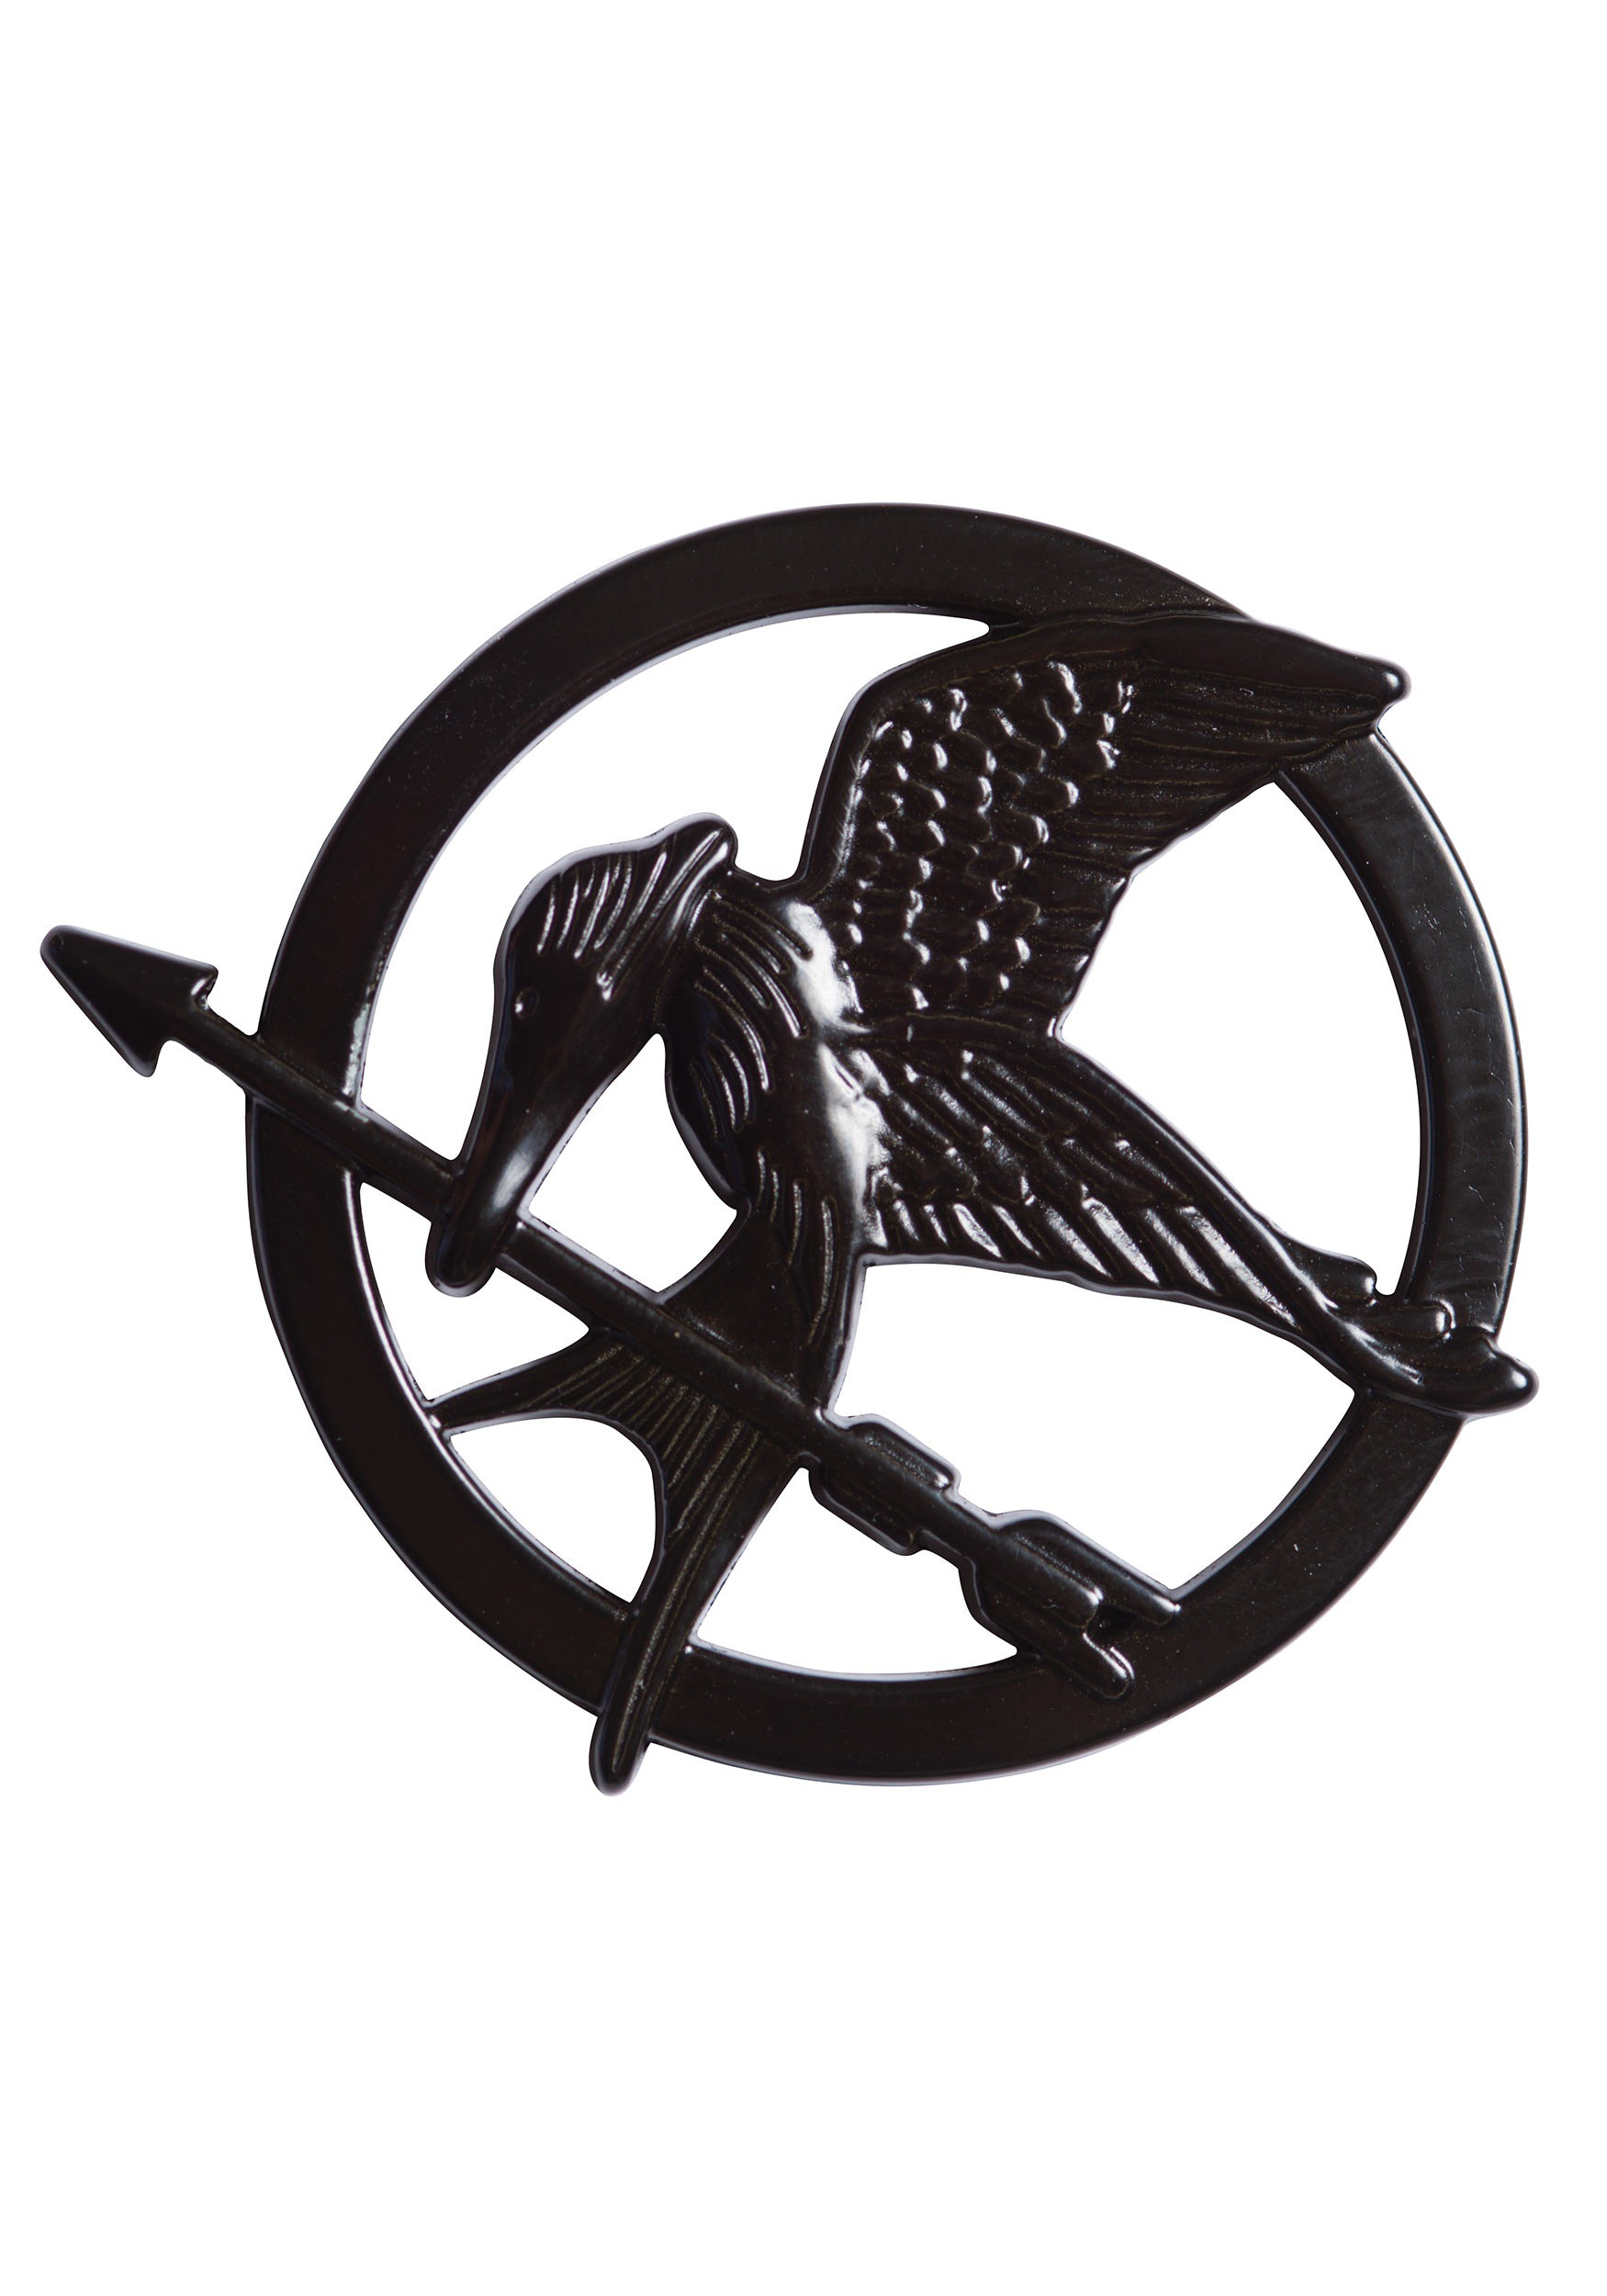 INOpets.com Anything for Pets Parents & Their Pets The Hunger Games Mockingjay Pin